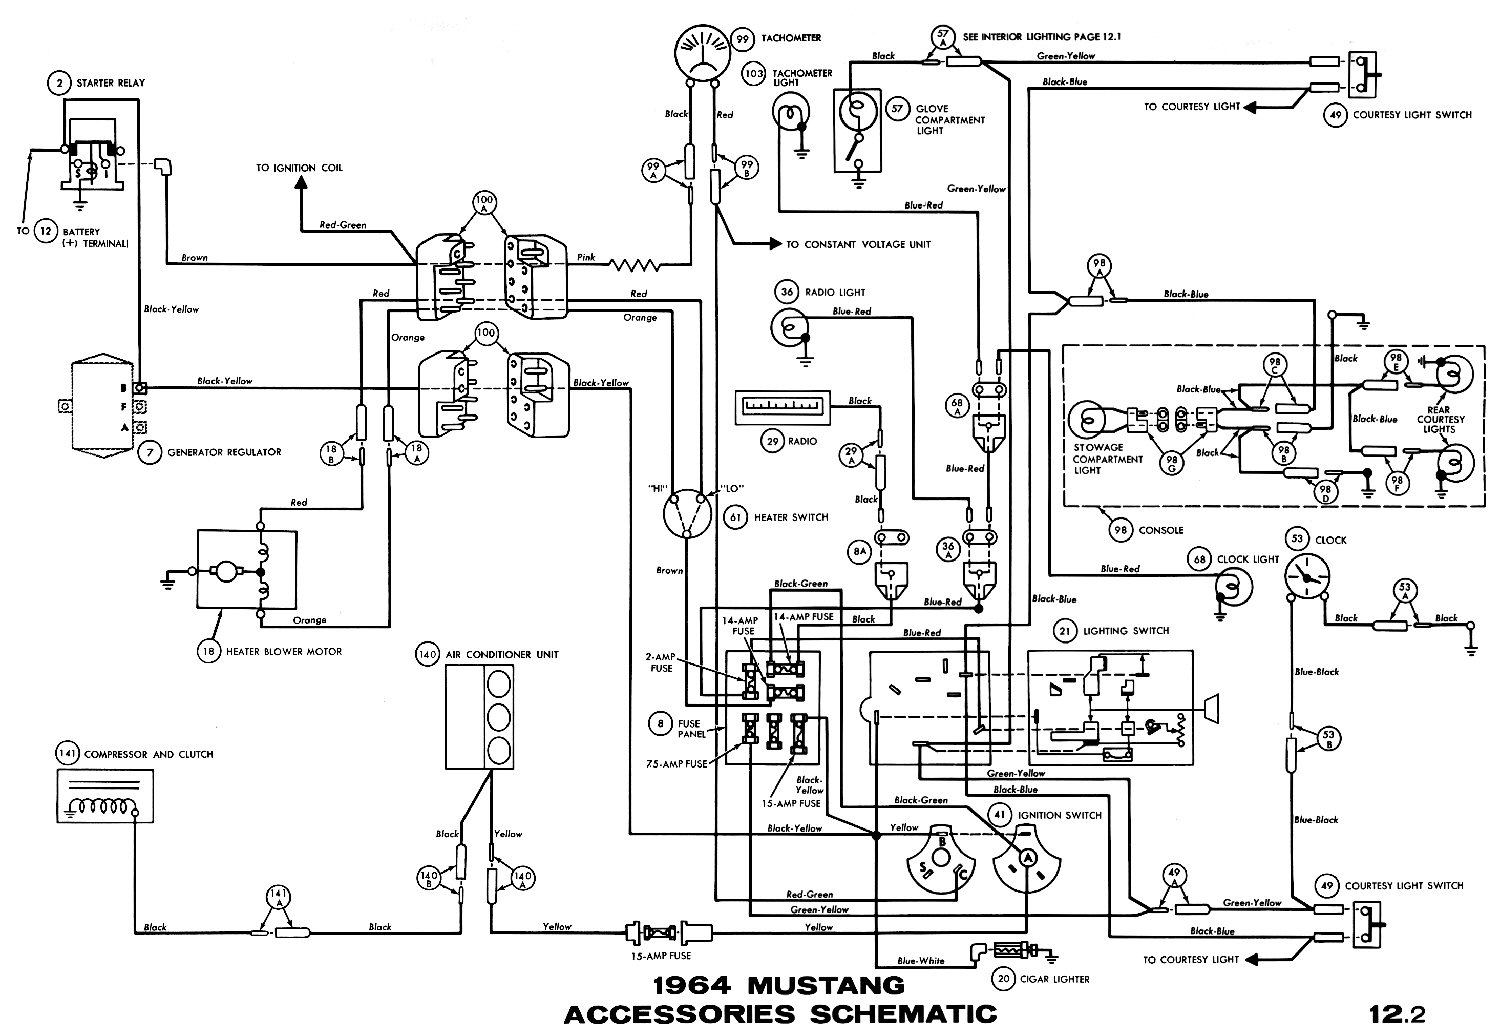 1964 mustang wiring diagrams - average joe restoration,Wiring diagram,Wiring Diagram For A 1970 Ford Mustang